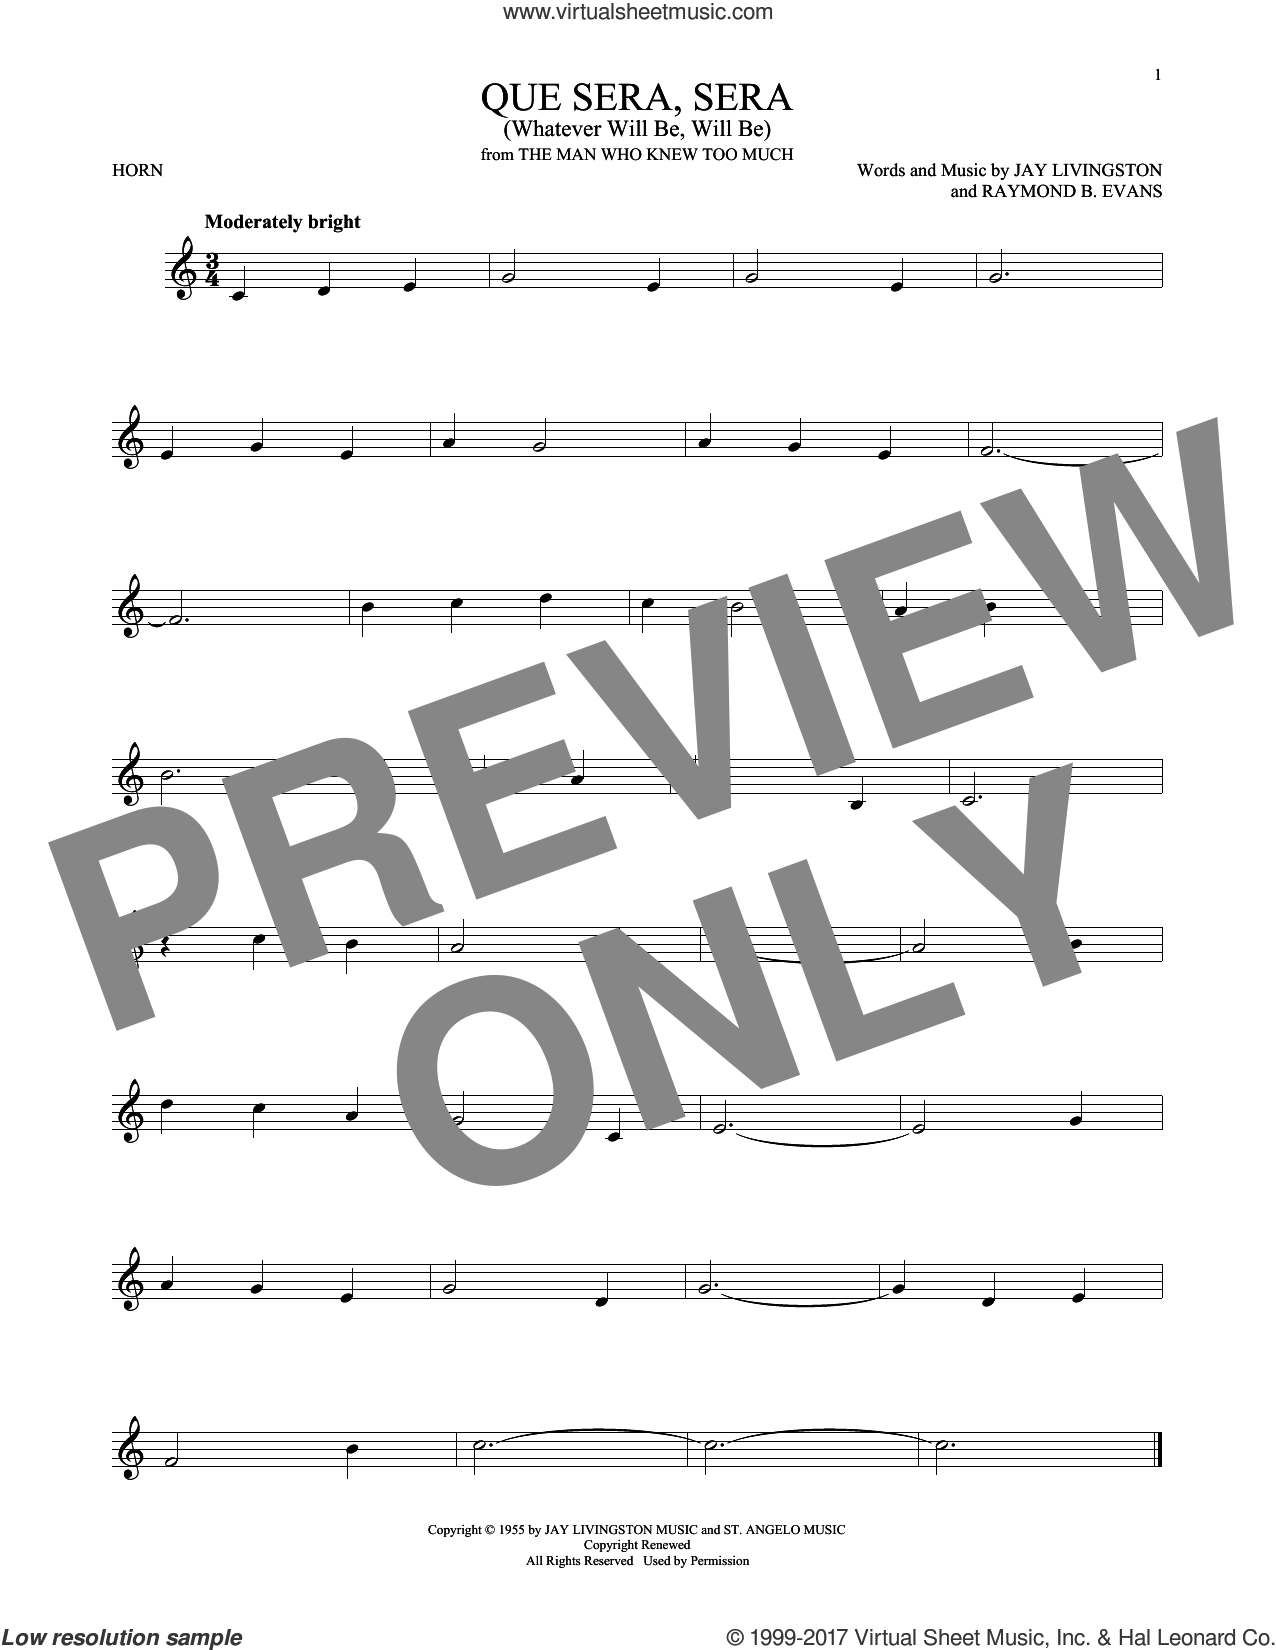 Que Sera, Sera (Whatever Will Be, Will Be) sheet music for horn solo by Doris Day, Jay Livingston and Raymond B. Evans, intermediate